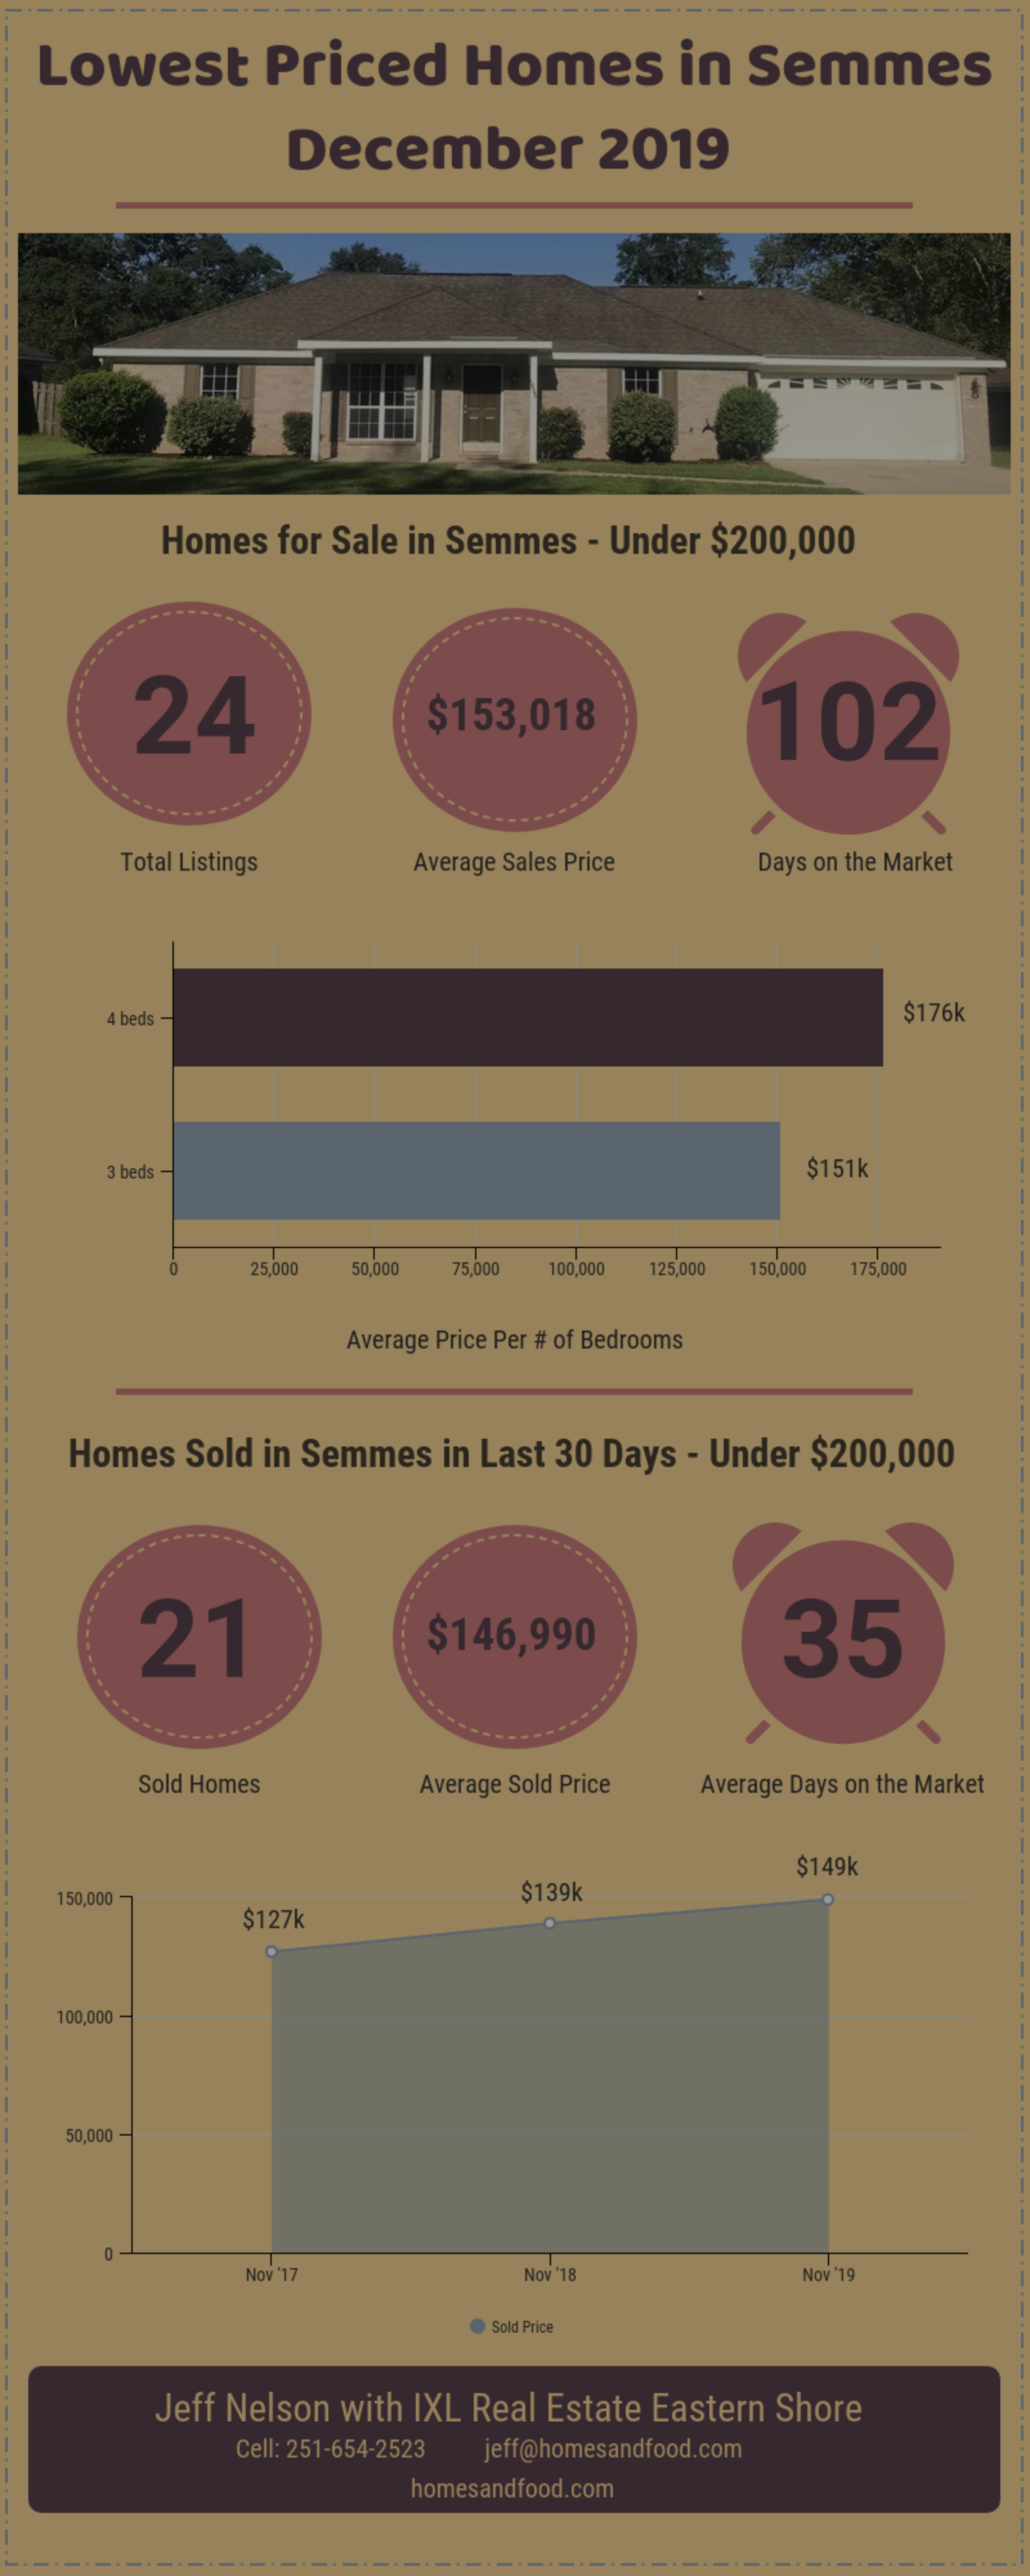 Lowest Priced Homes in Semmes – December 2019